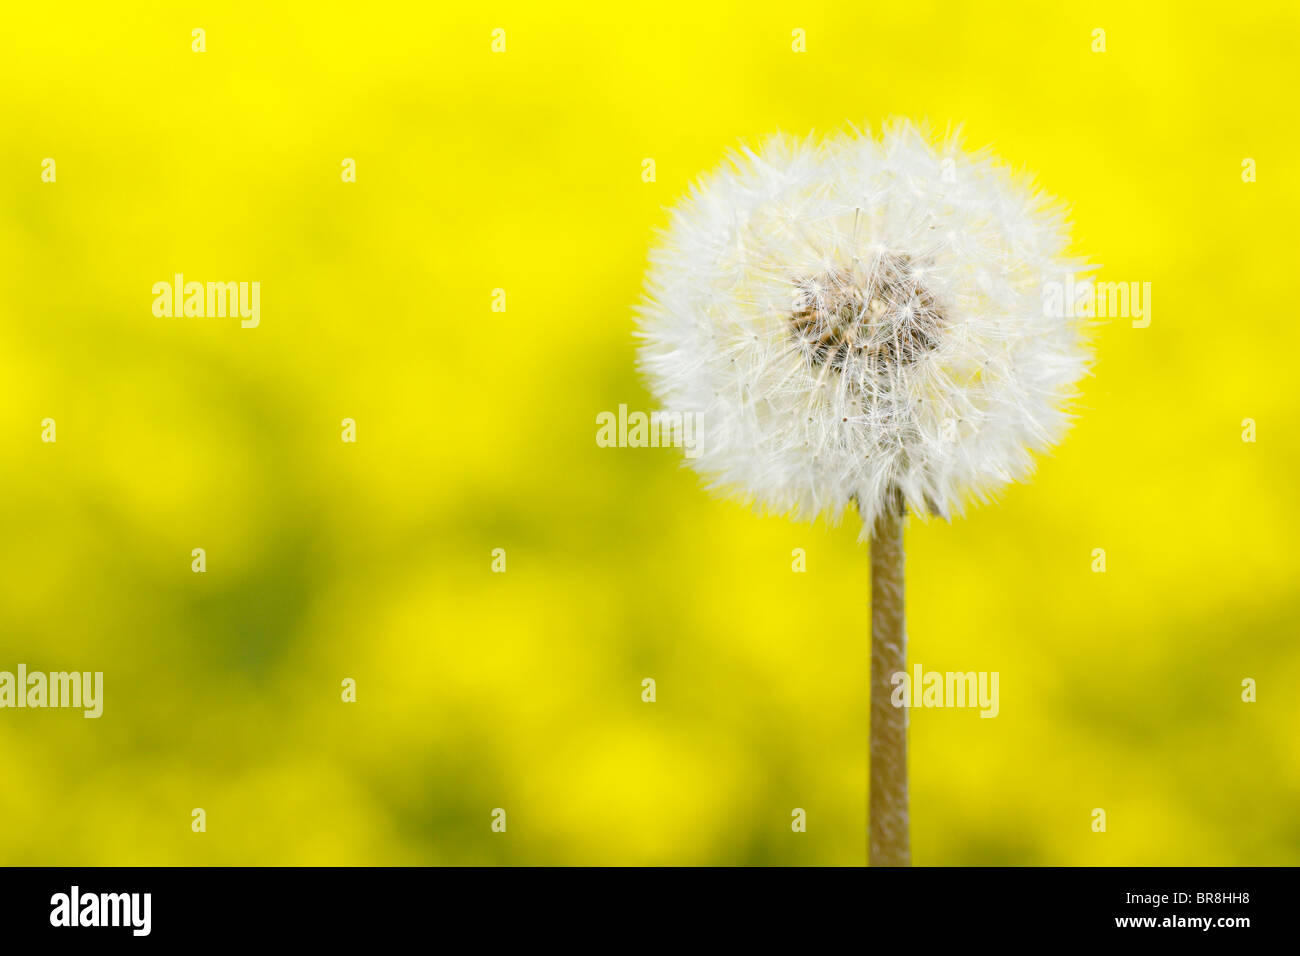 Seeds of dandelion, close up, differential focus, copy space Stock Photo